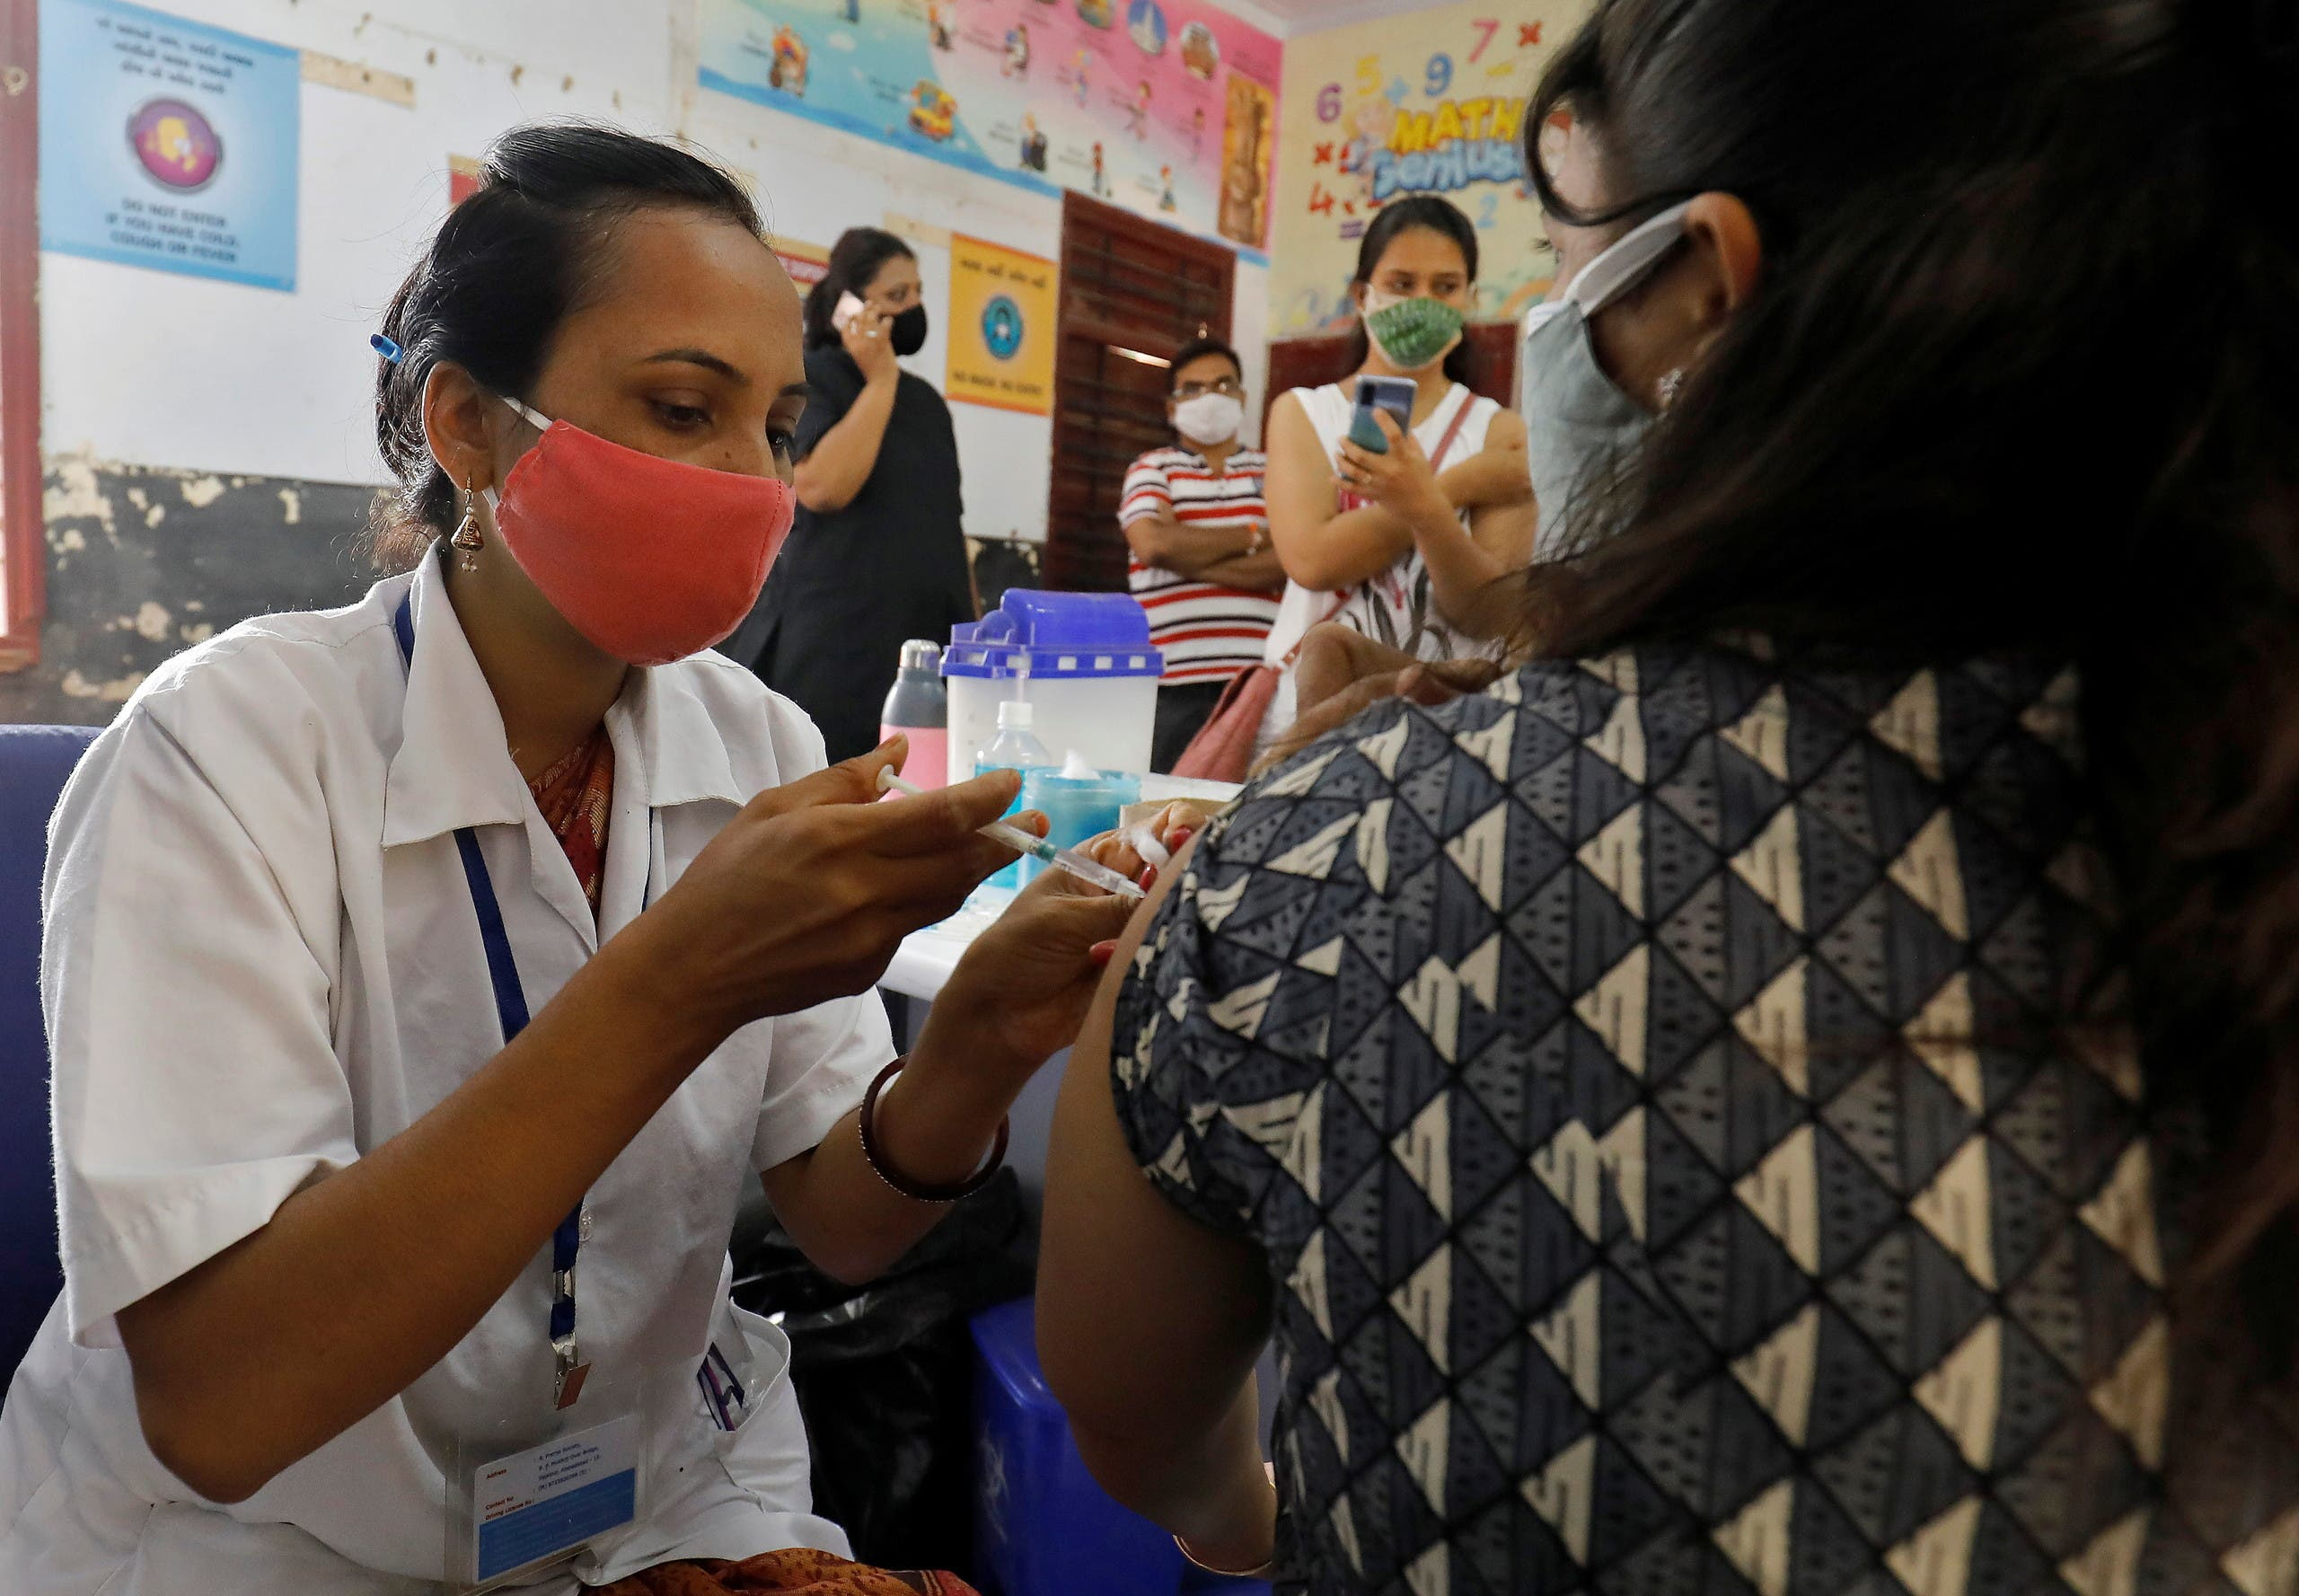 A healthcare worker gives a dose of COVISHIELD, a coronavirus disease (COVID-19) vaccine manufactured by Serum Institute of India, to a woman inside a classroom of a school, which has been converted into a temporary vaccination centre, in Ahmedabad, India, May 1, 2021. (Reuters)